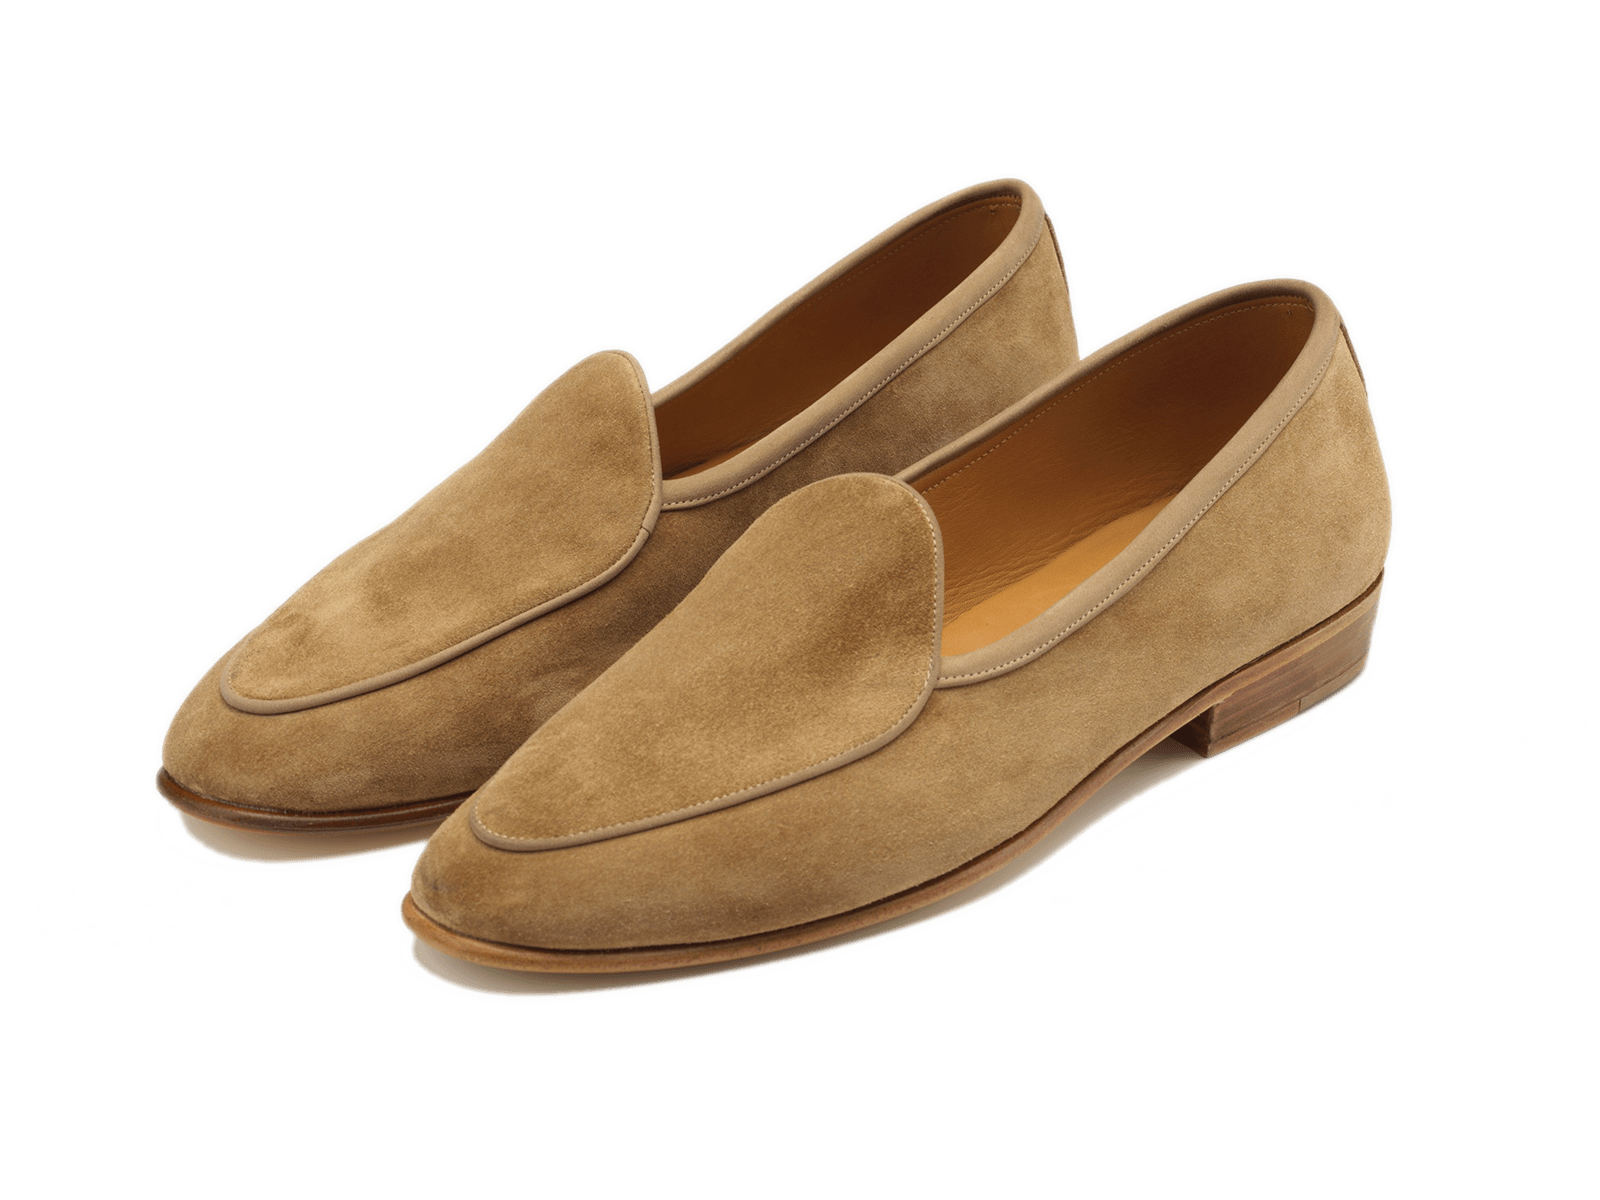 Sagan Classic Vence in Glove Suede Clay